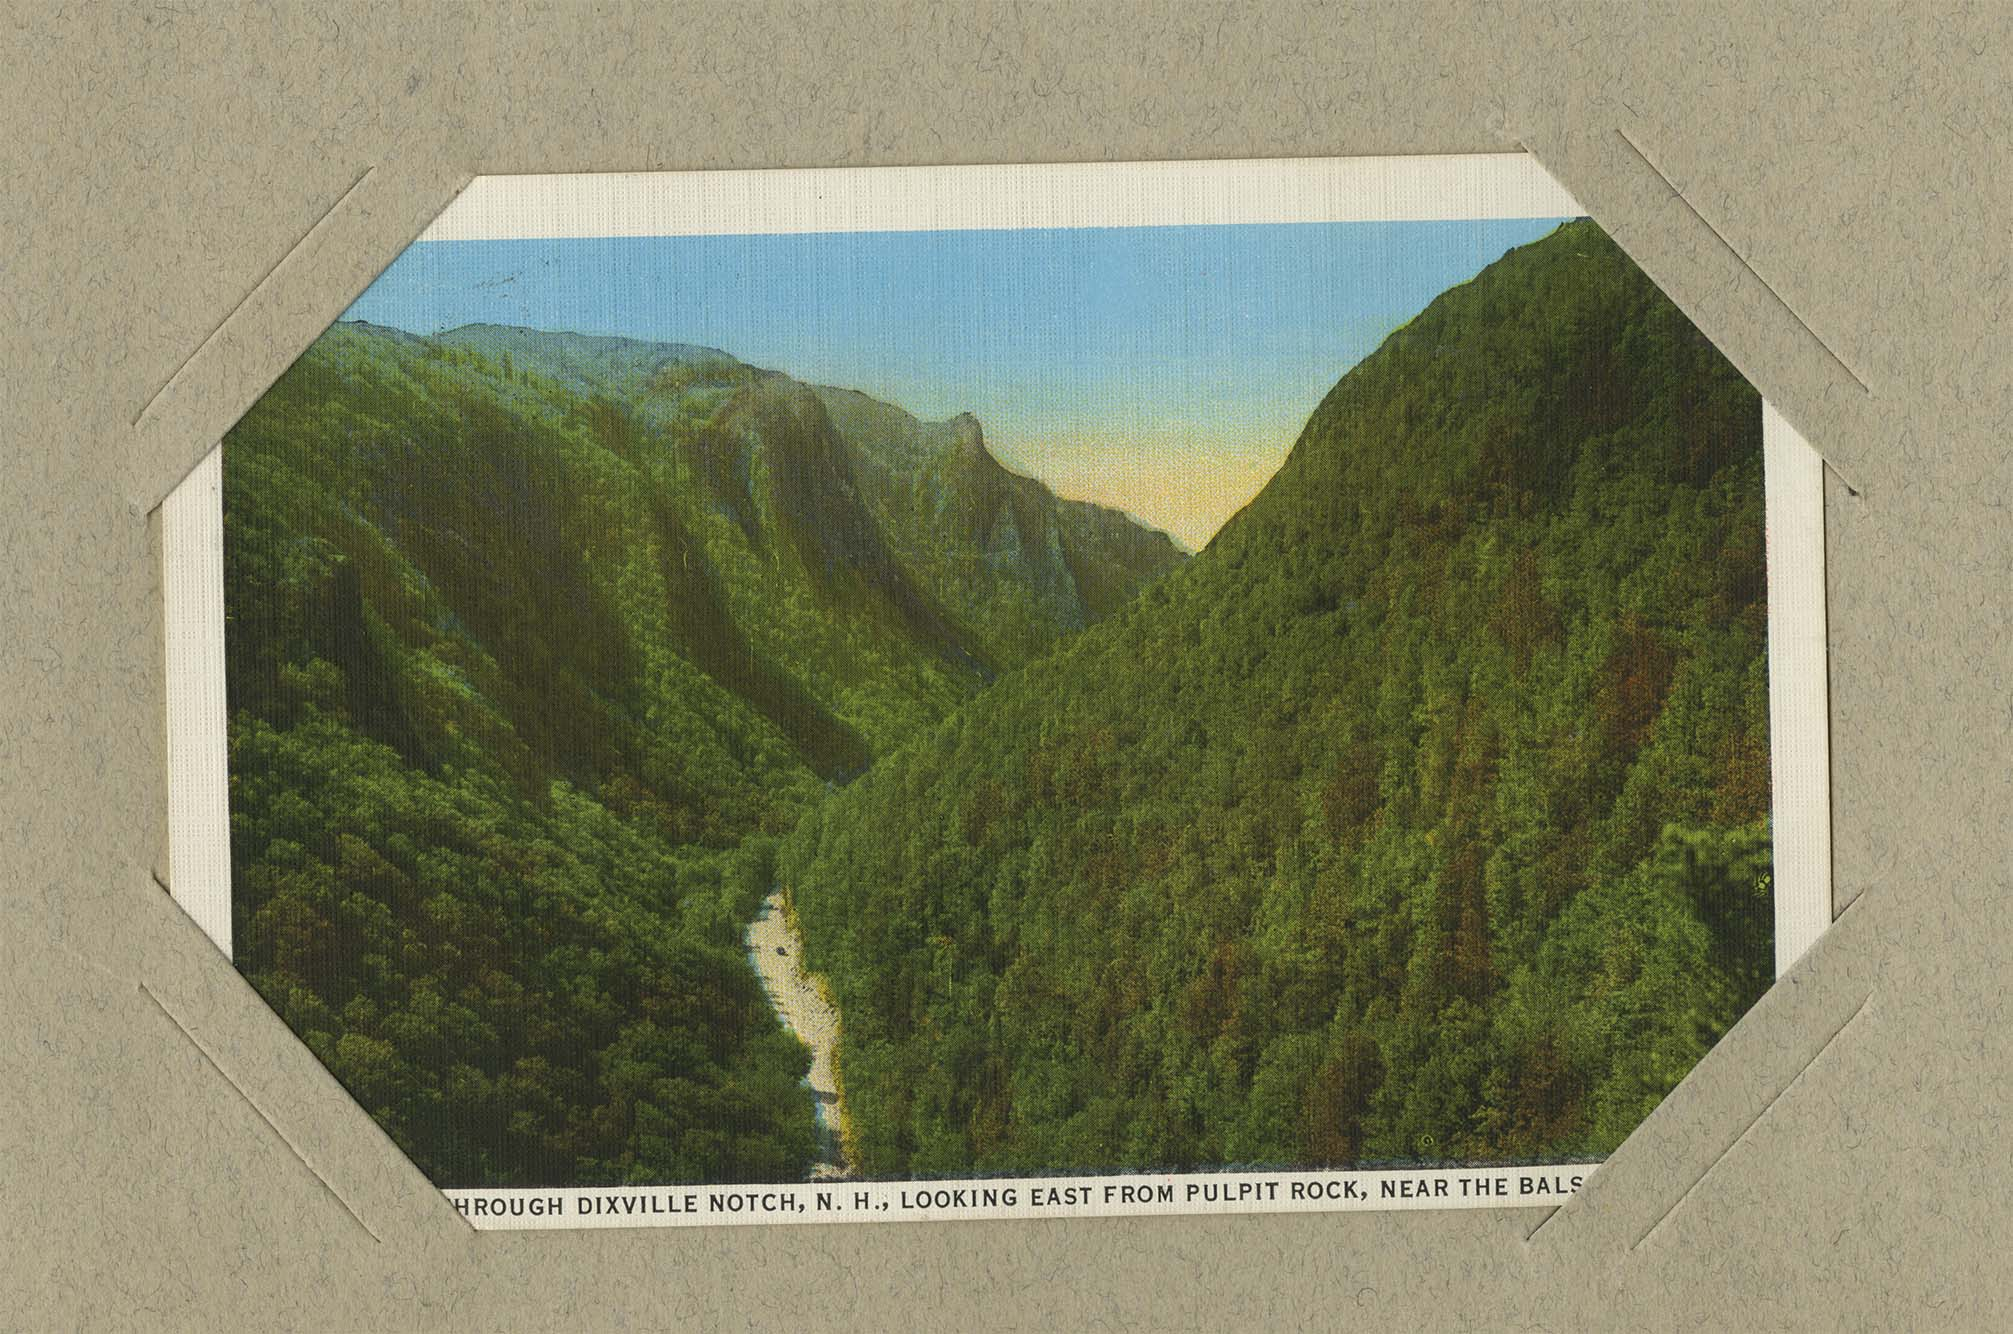 How to scrapbook on mac - Postcard From Mac To Barbara Shields About Wilderness In New Hampshire